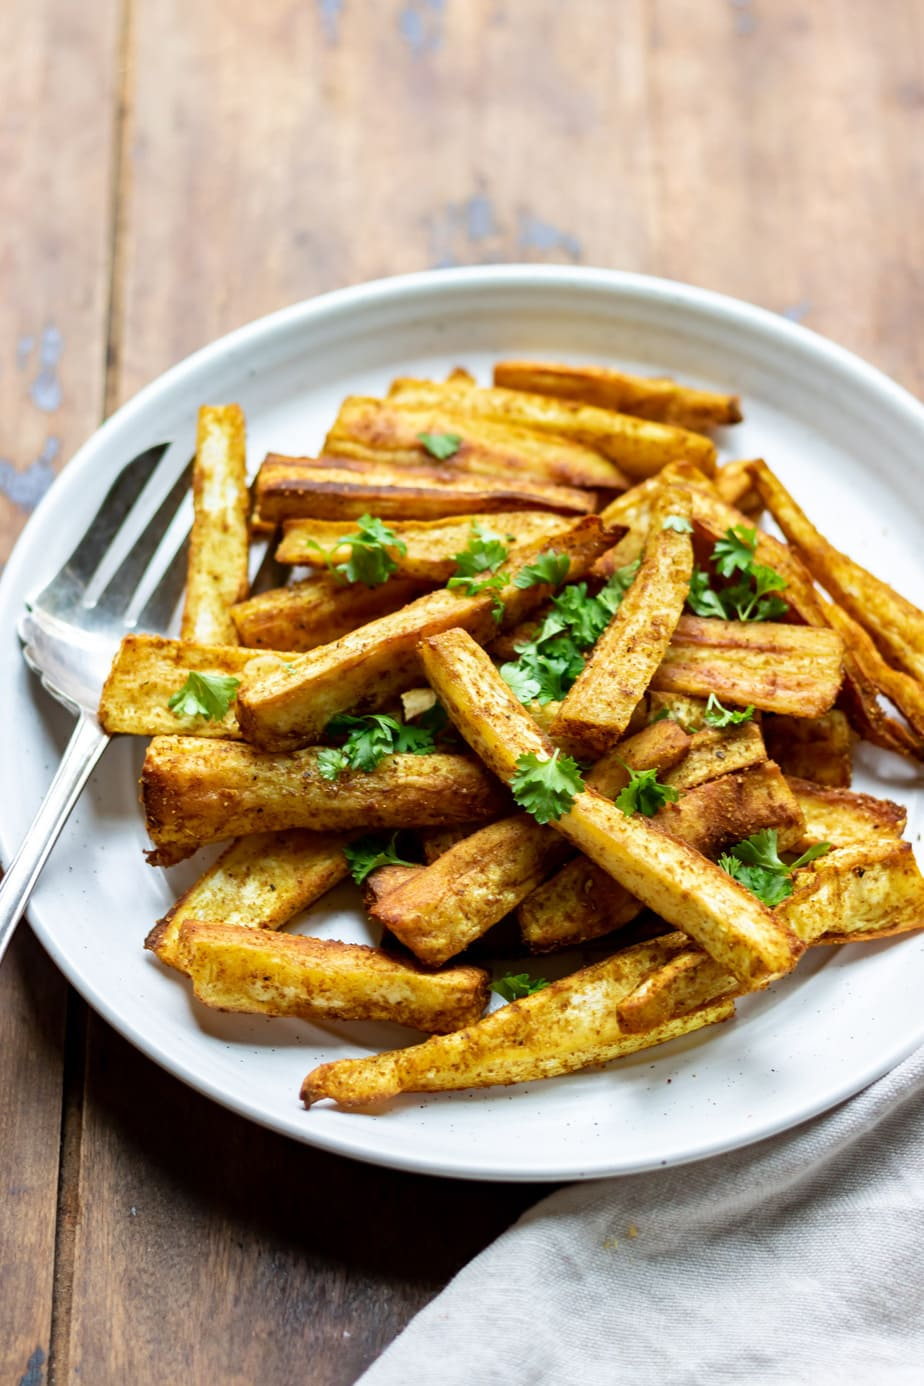 Plate of roasted parsnip with curry flavorings.